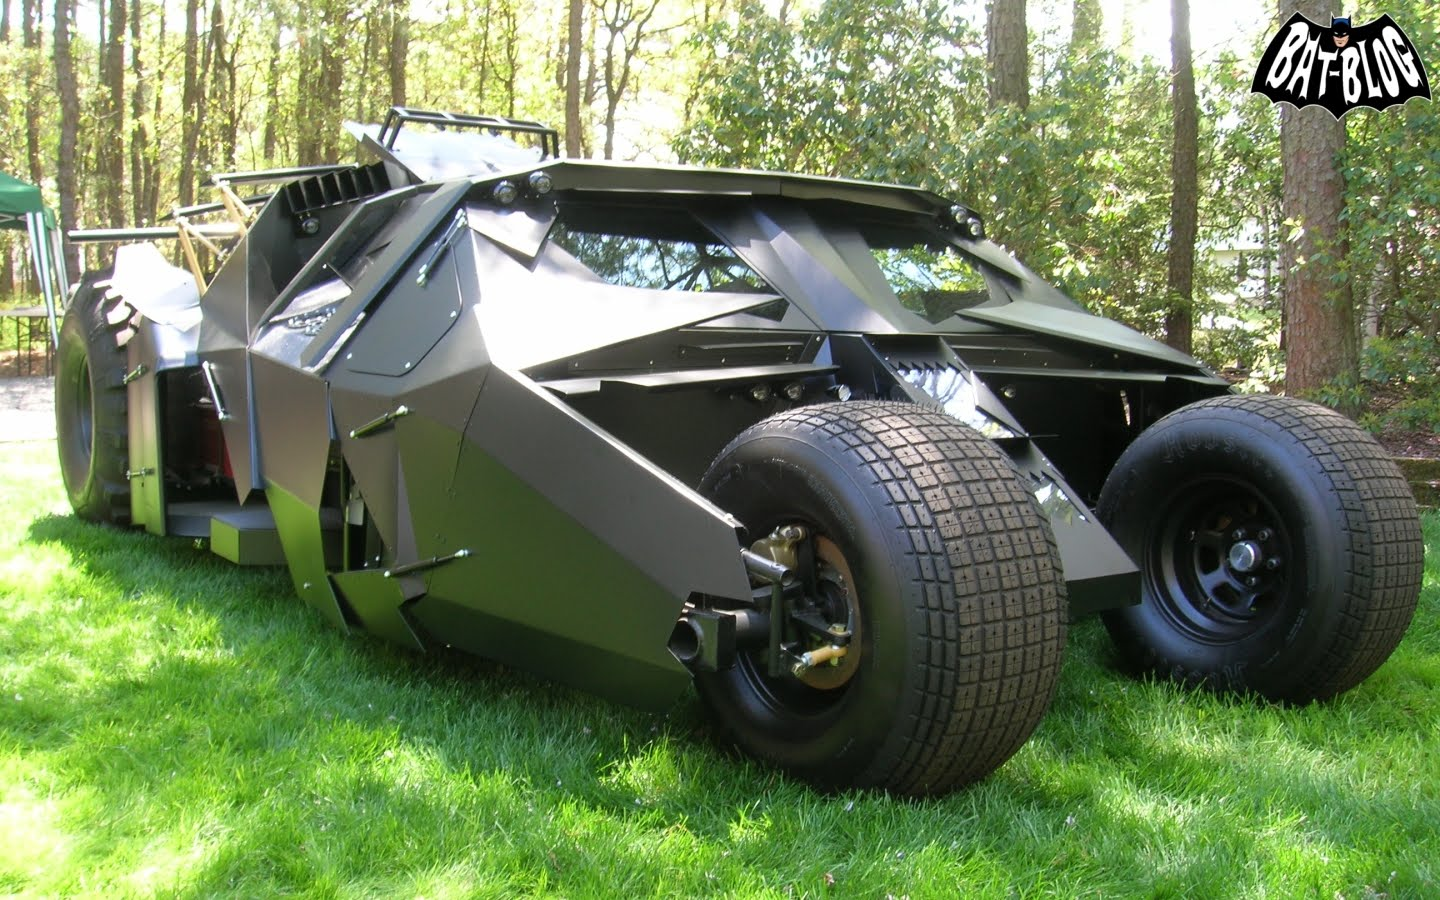 favourite tattoos  THE DARK KNIGHT MOVIE TUMBLER BATMOBILE REPLICA